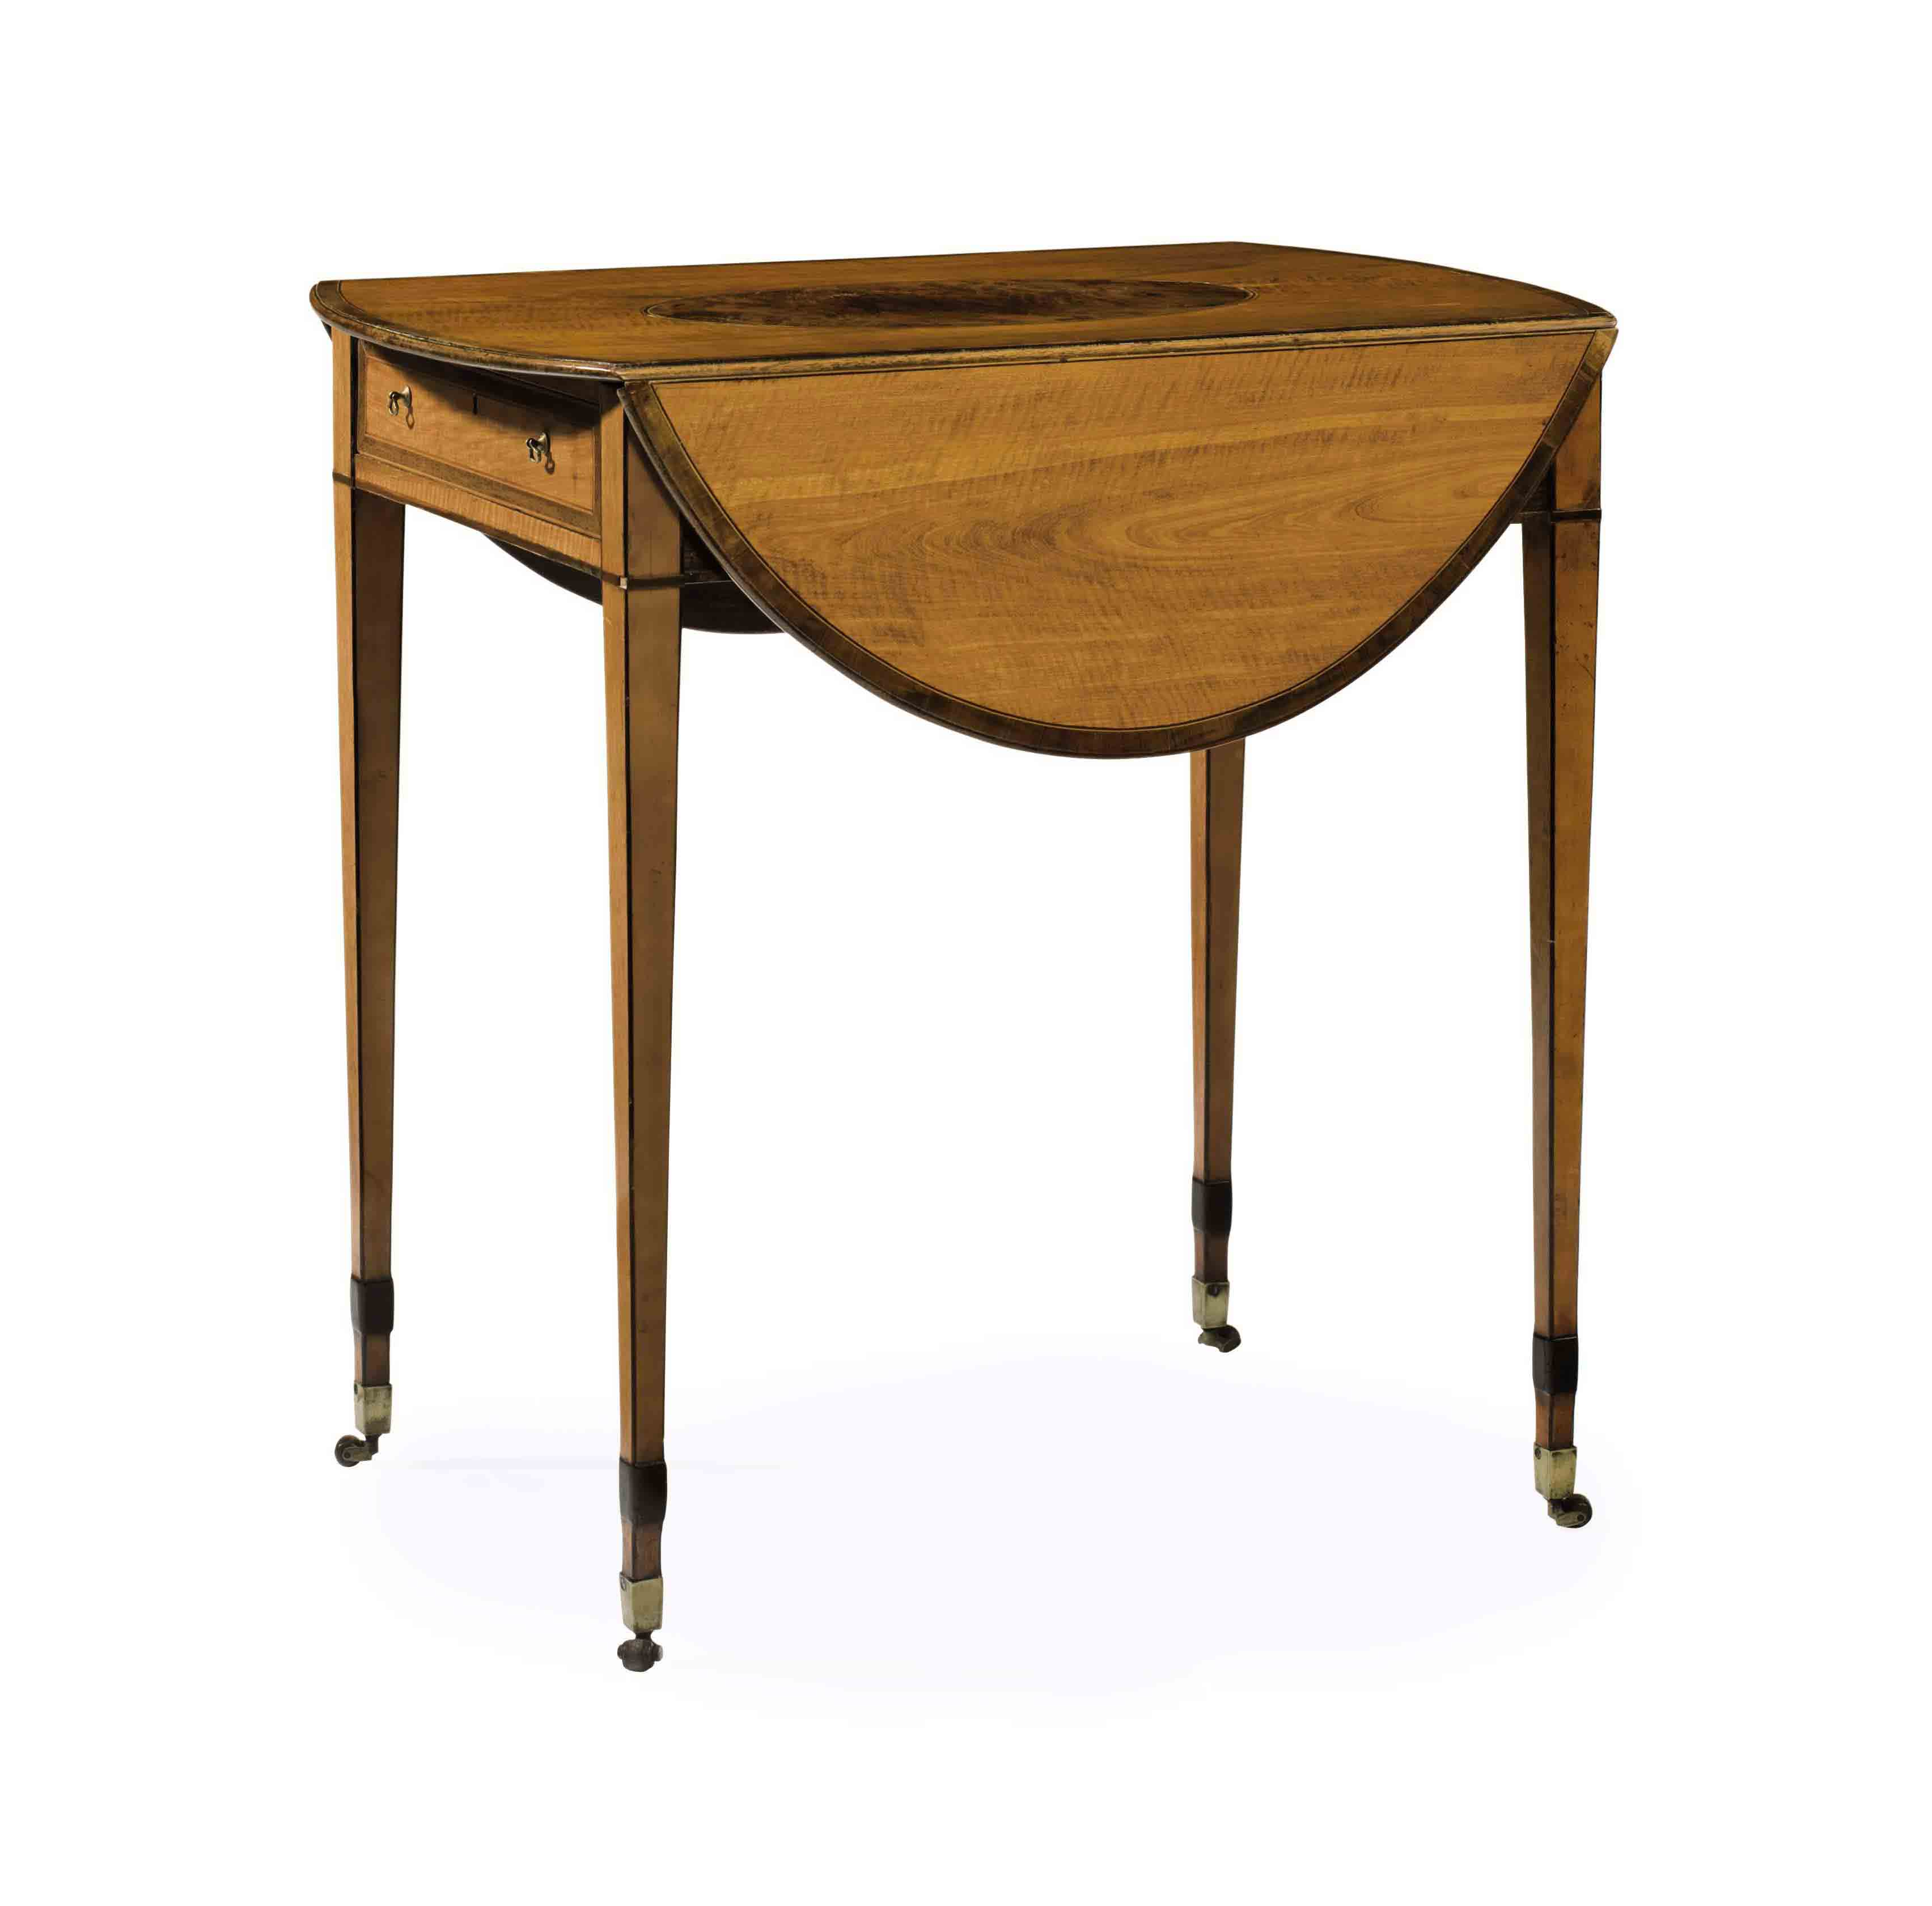 A GEORGE III SATINWOOD AND YEW